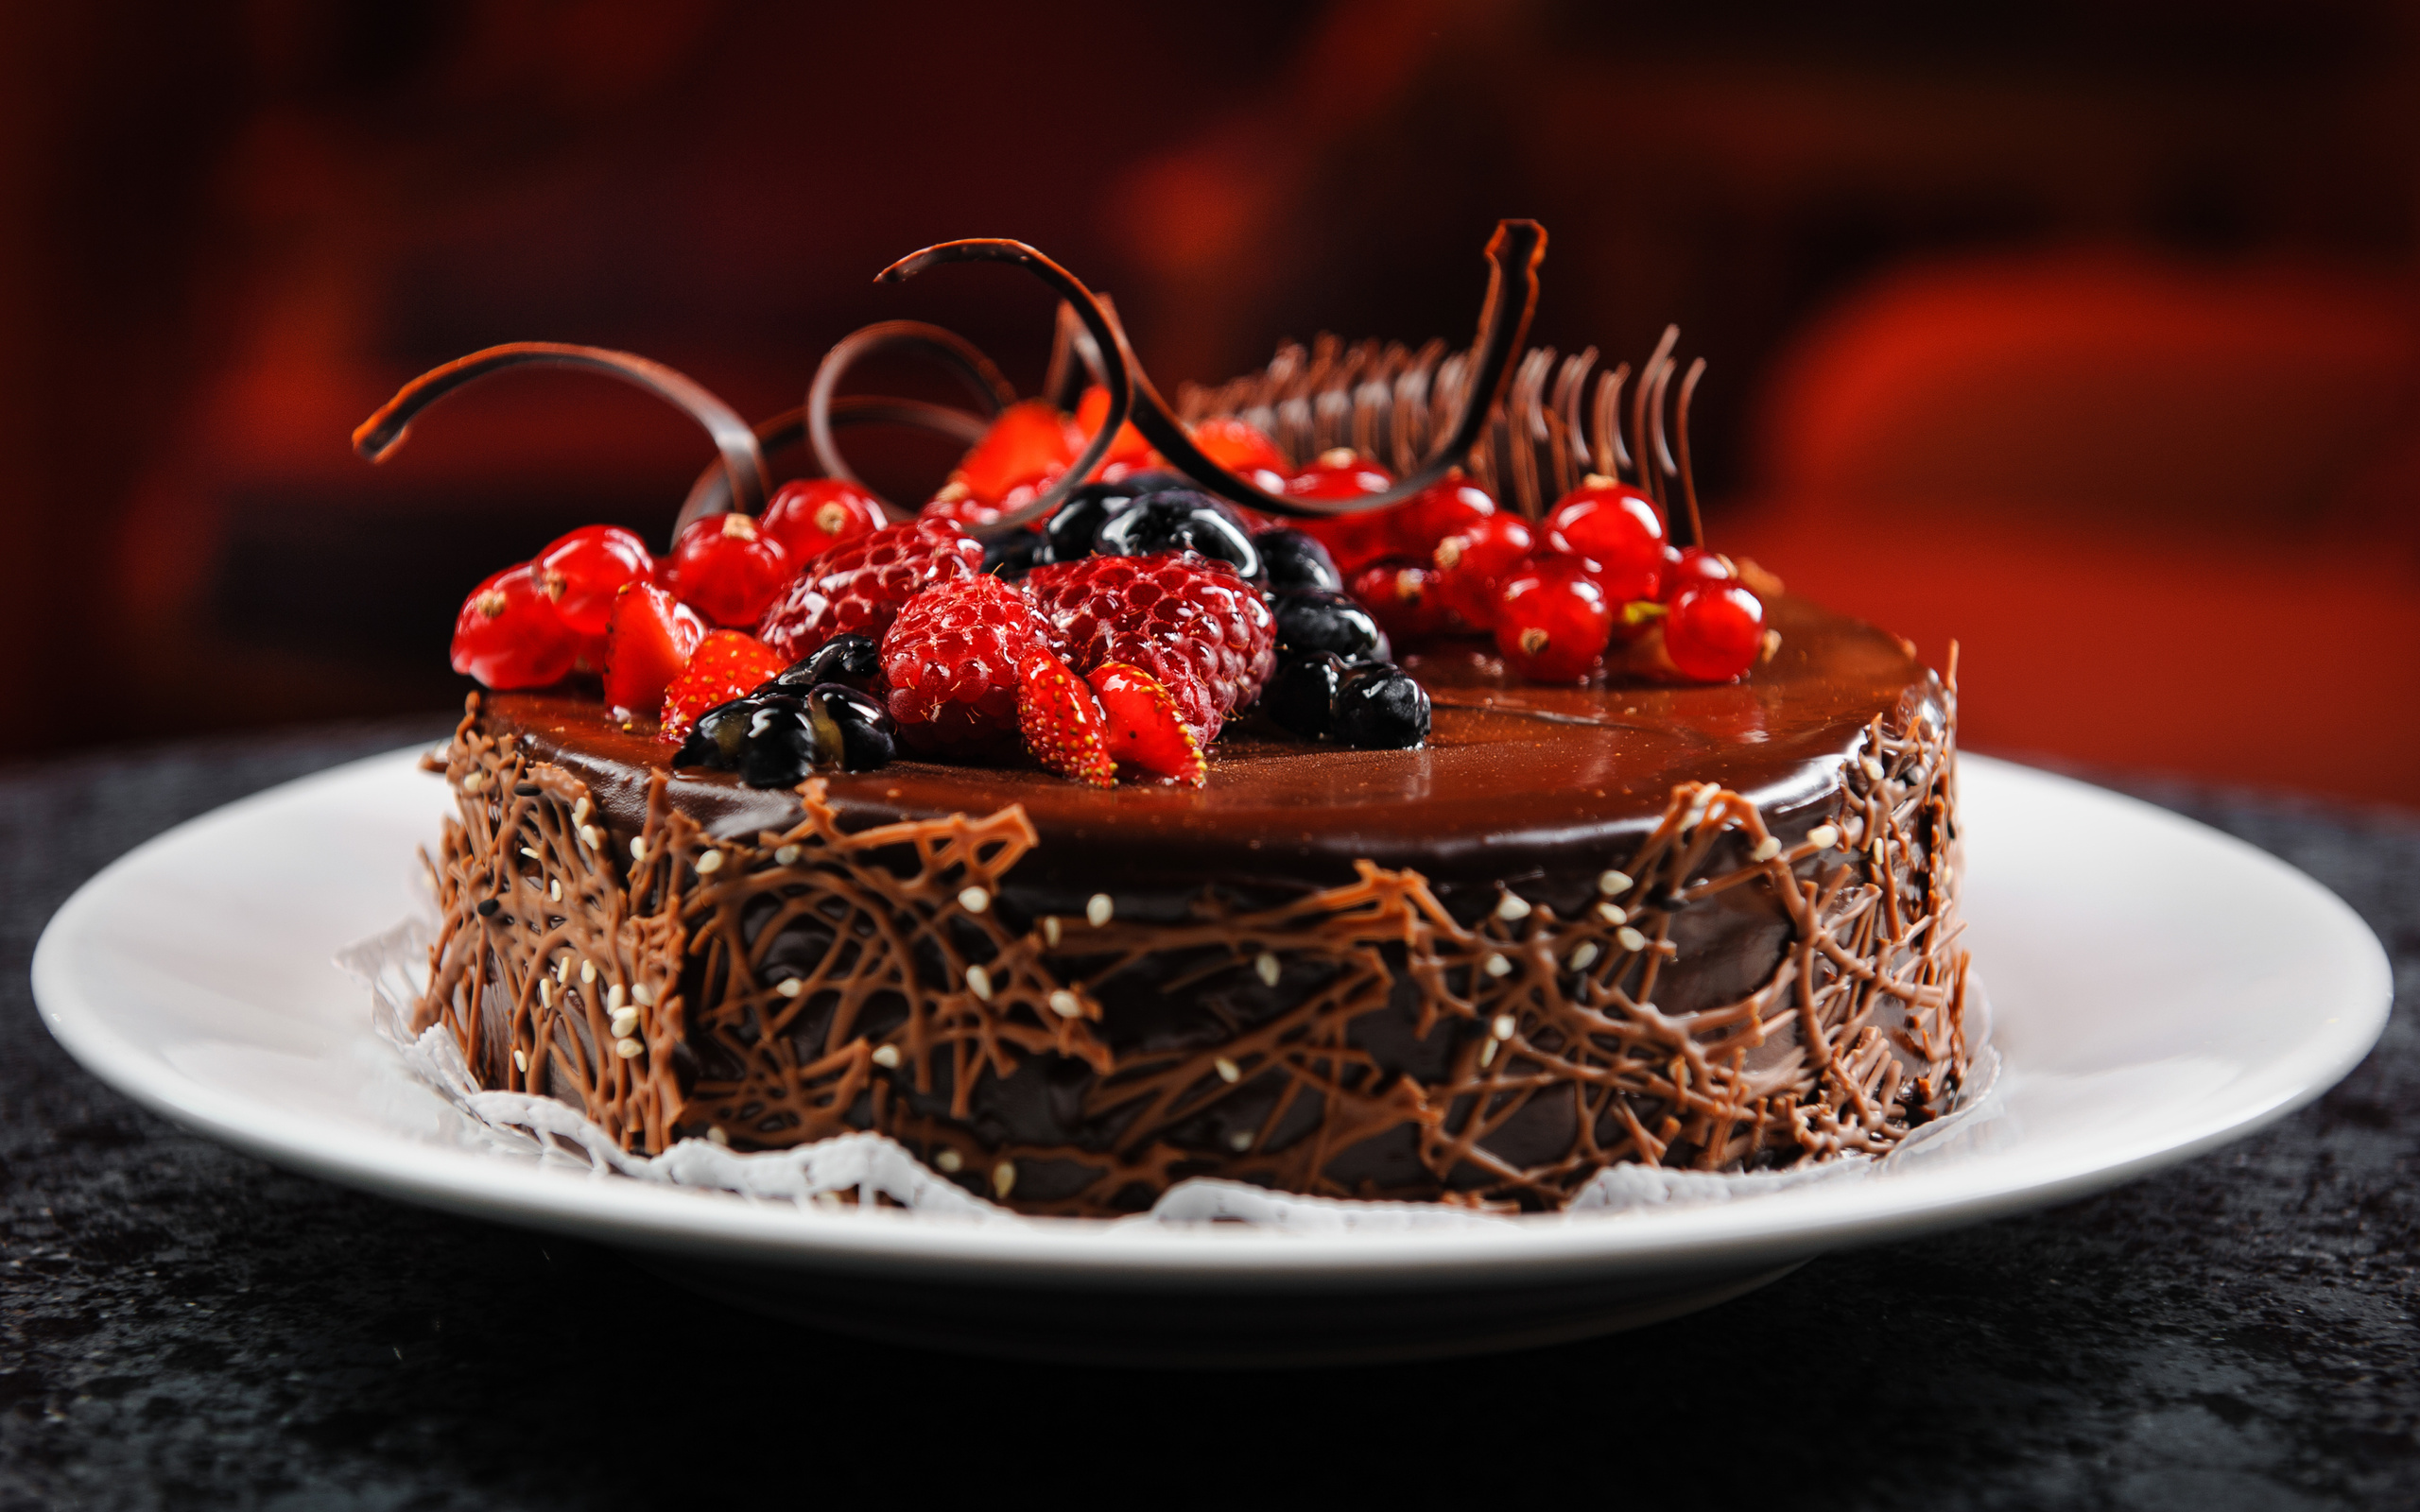 755 Cake Hd Wallpapers Background Images Wallpaper Abyss